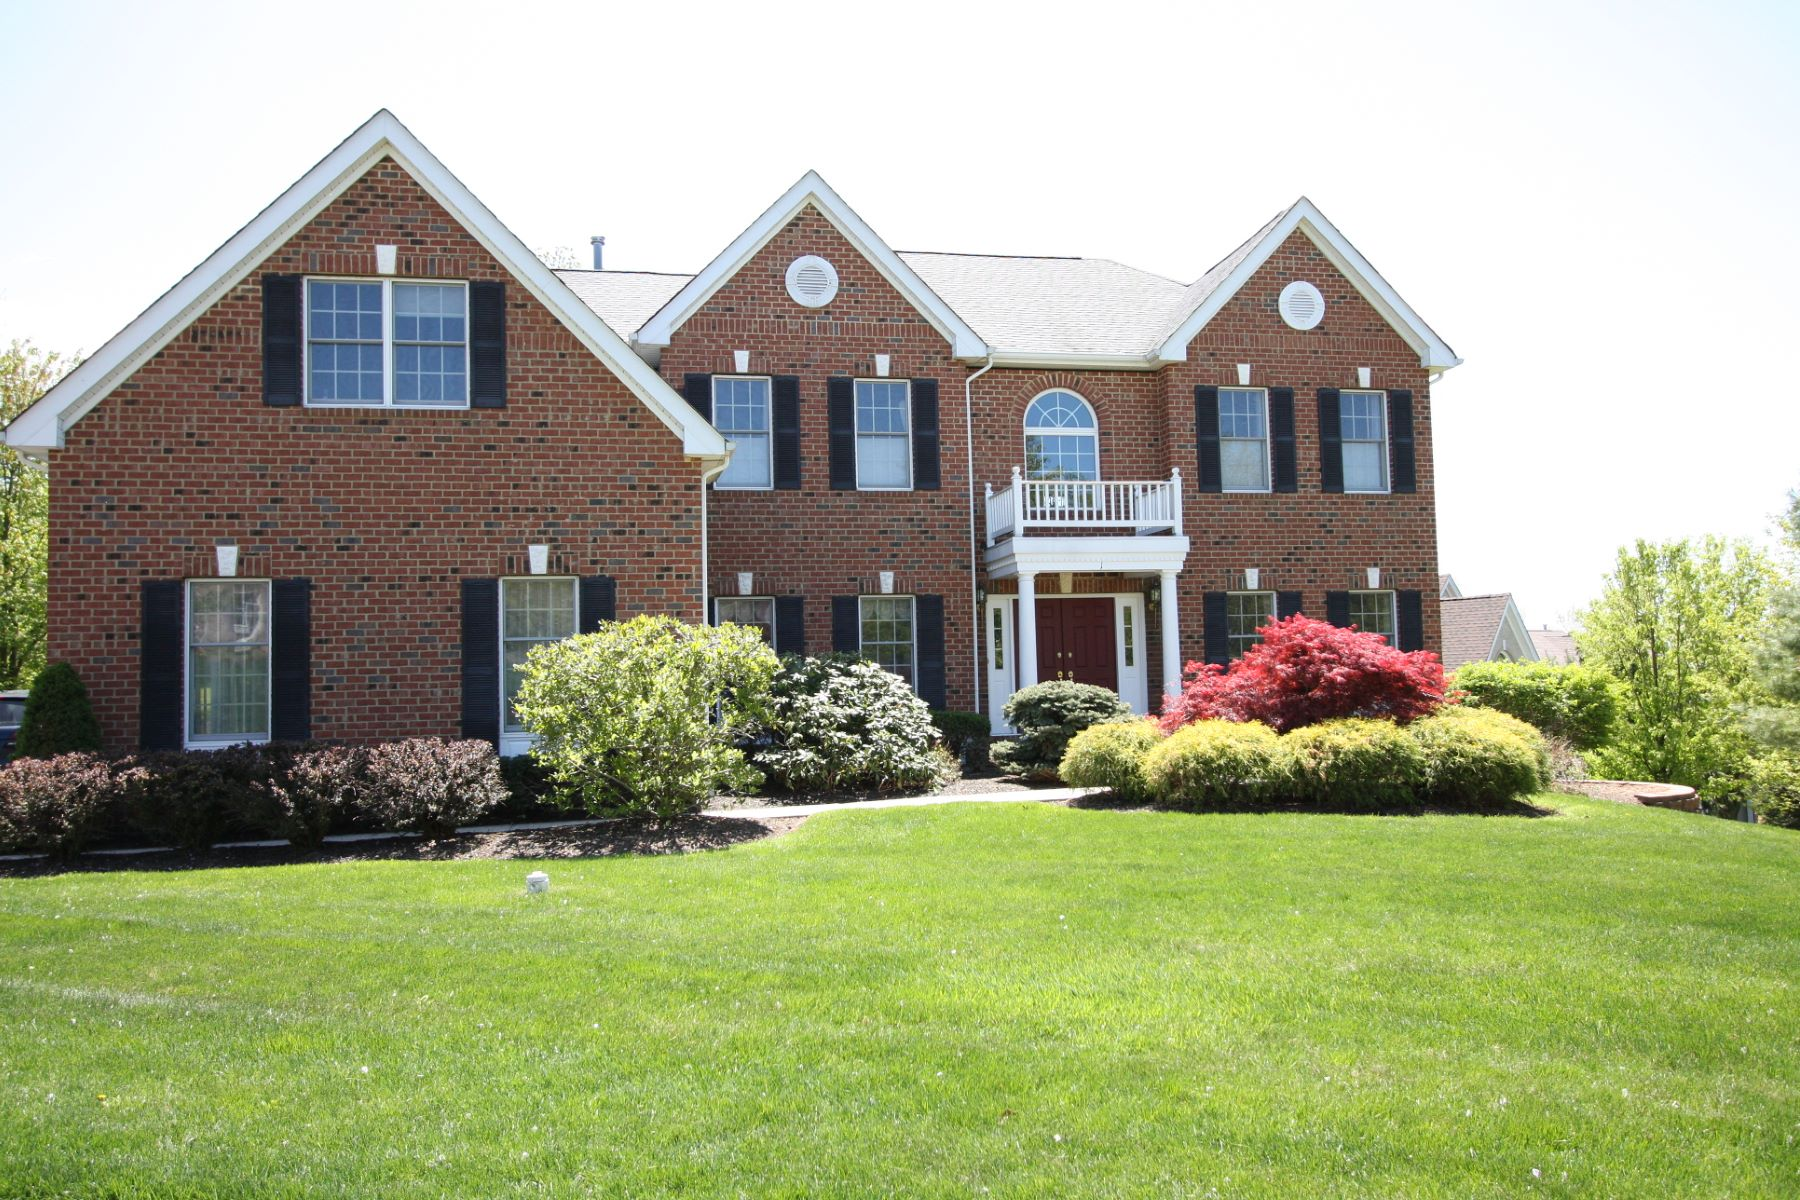 Single Family Home for Rent at Beautiful Marion Model Home 1 Savannah Court Basking Ridge, New Jersey 07920 United States